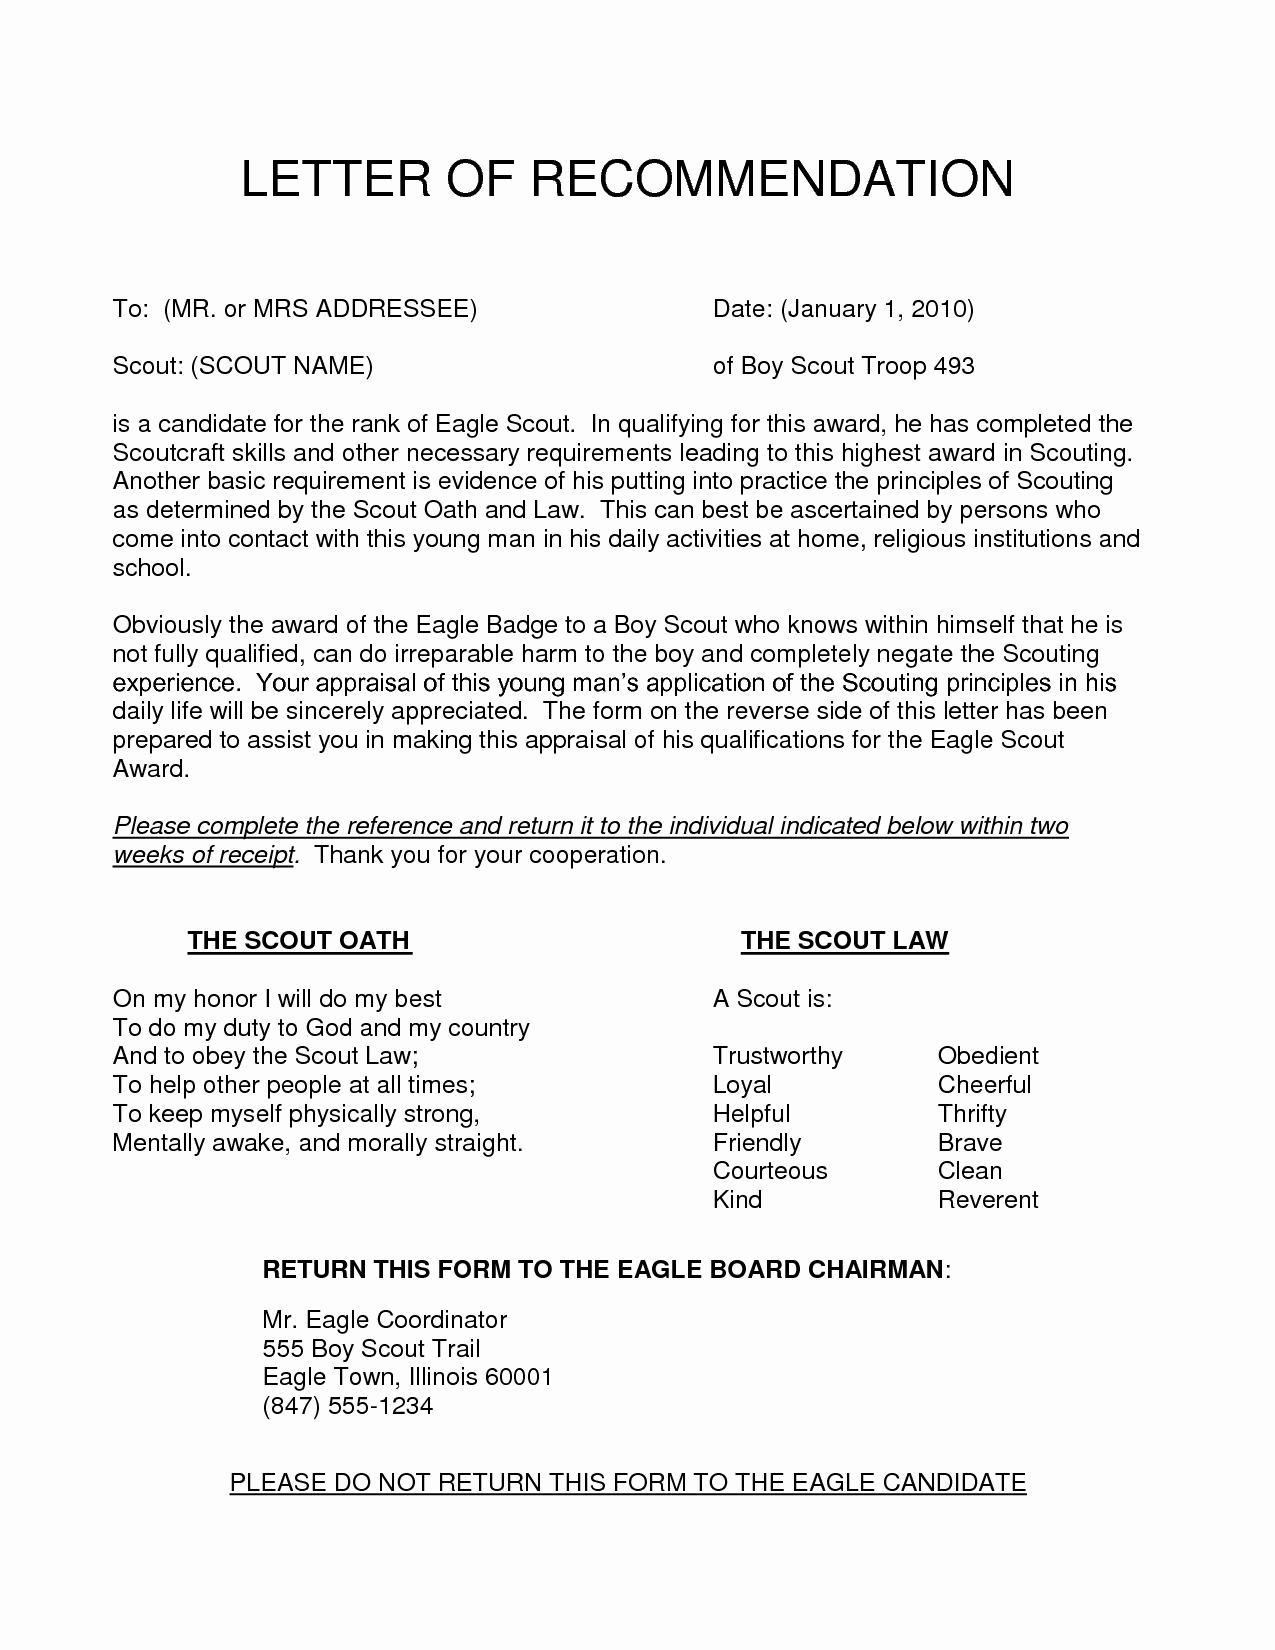 Eagle Scout Letter Of Ambition Example Elegant Pin by Terry Duvall On Eagle Scout Letters Of